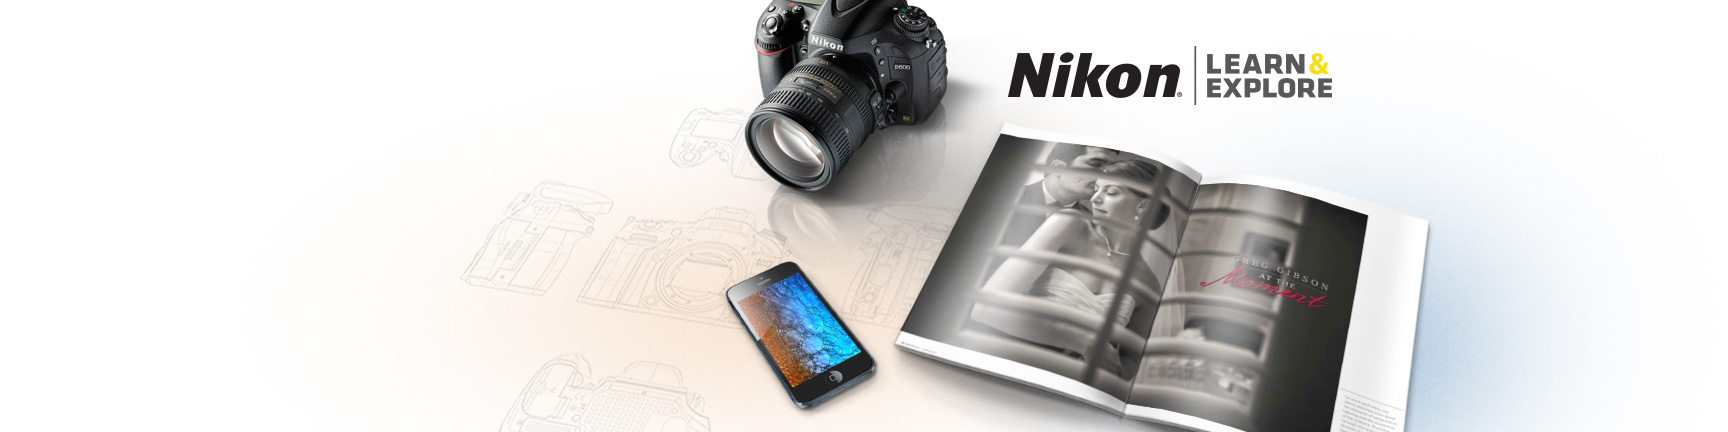 three still images, an image in an iPhone, the Nikon Learn and Explore logo, a map flag, high ISO icon and Nikon World magazine page spread